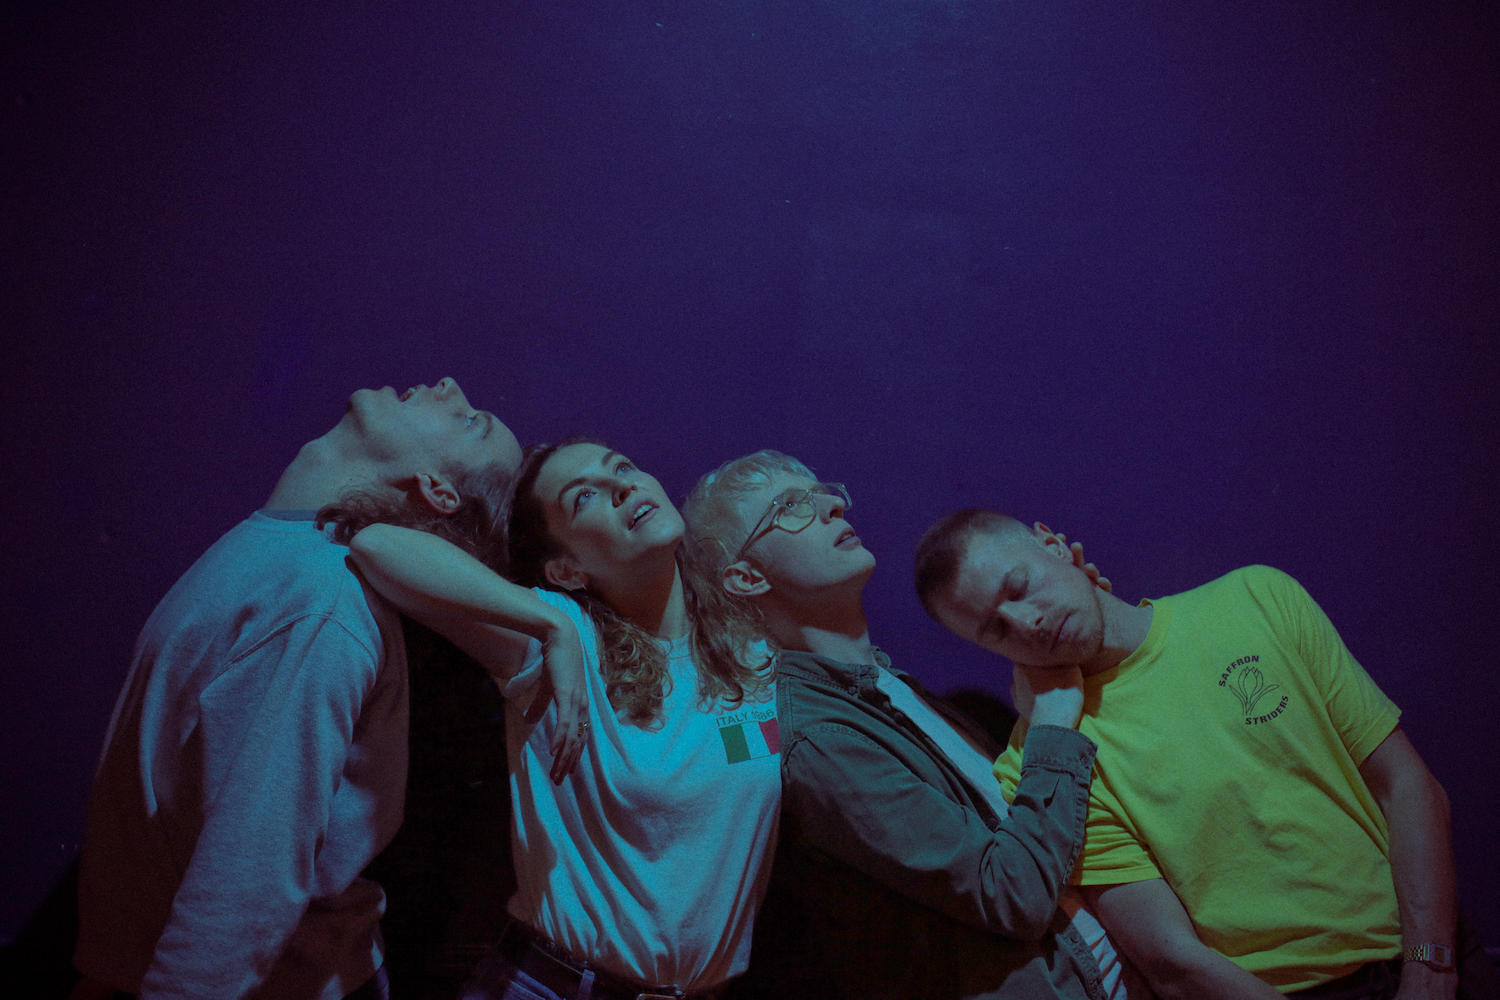 Childcare share new track 'Put Down Your Pen'